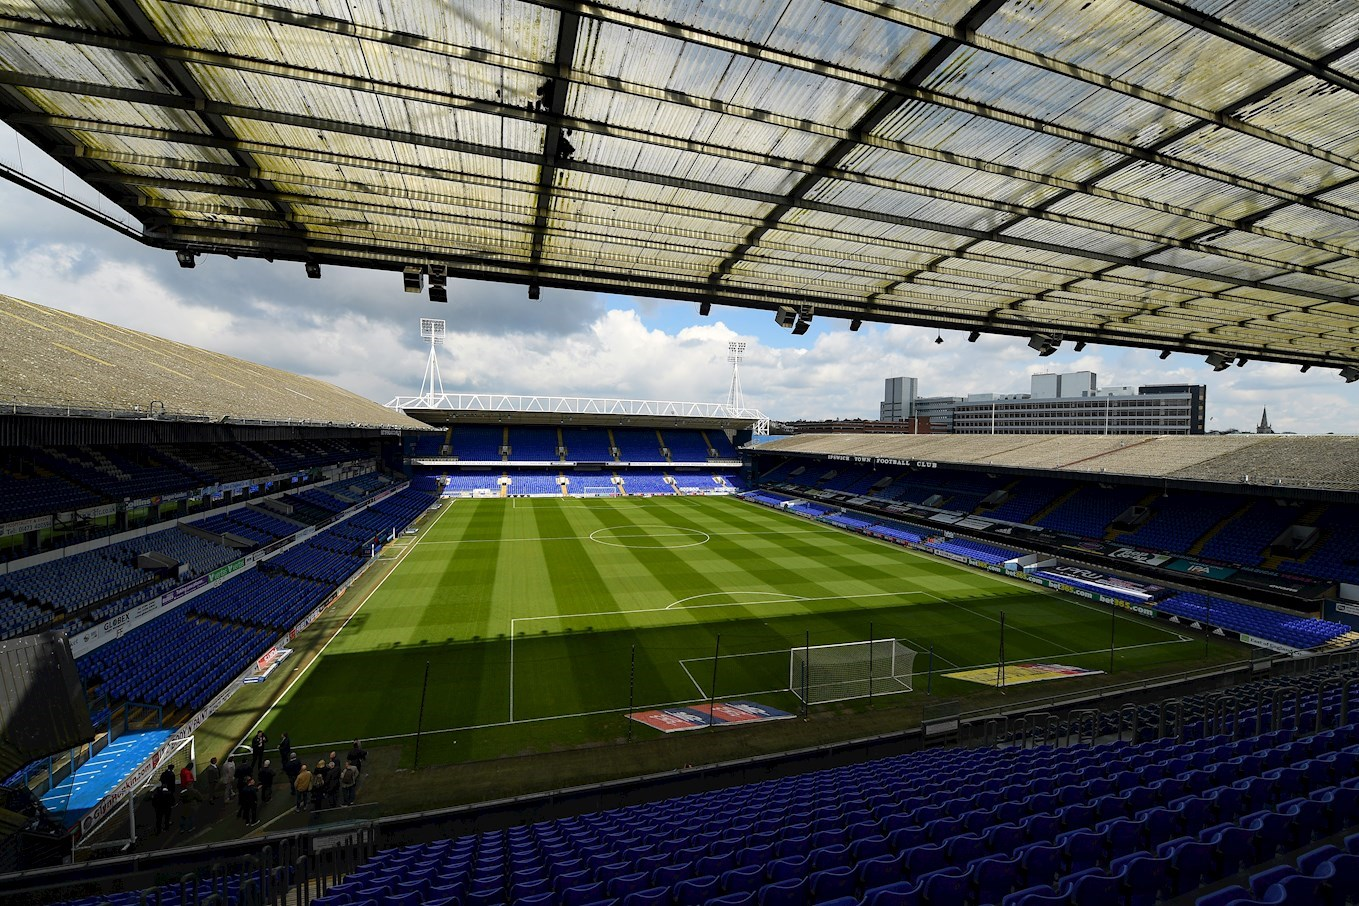 PREVIEW: New League One Opponents - Ipswich Town